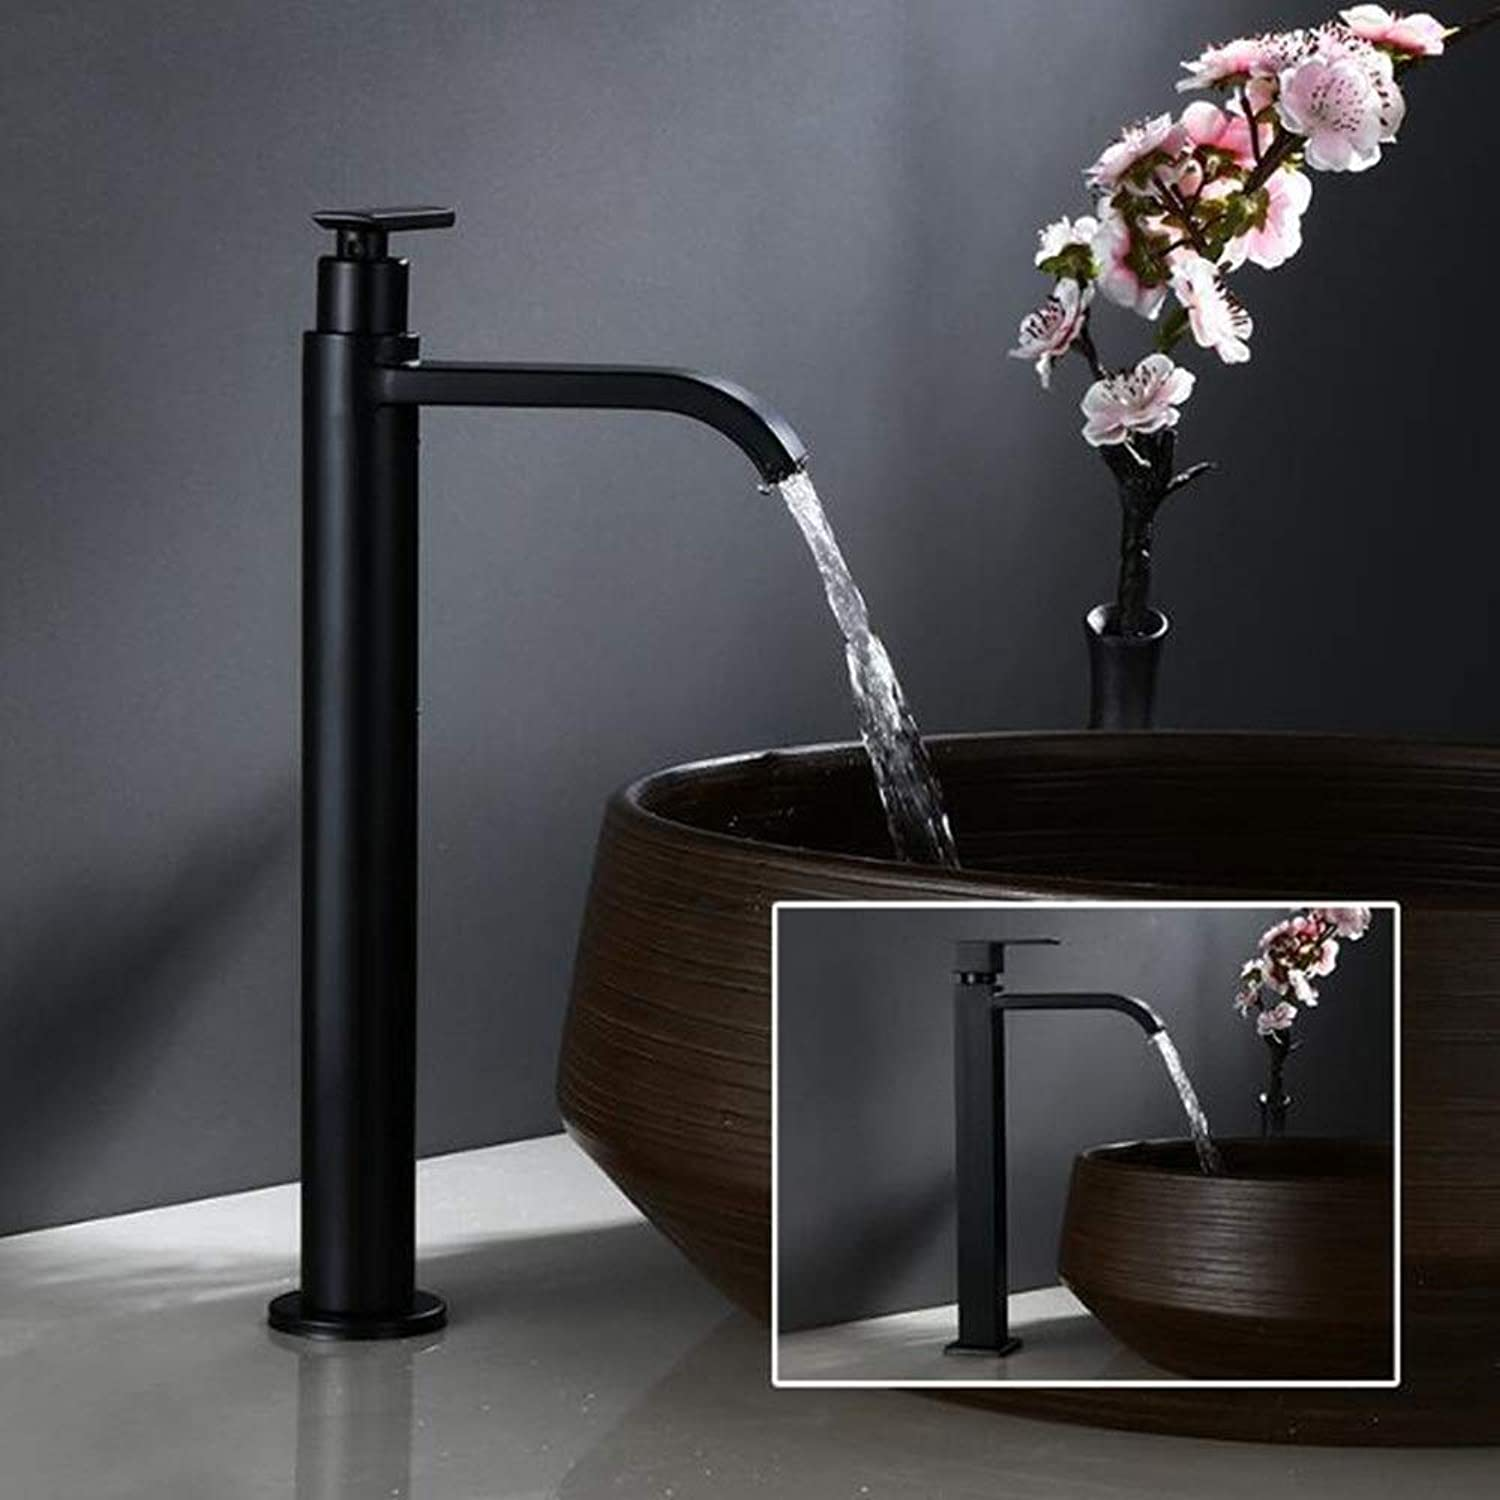 Towero Single cold black bathroom counter basin faucet 304 stainless steel art basin faucet (Size   30)